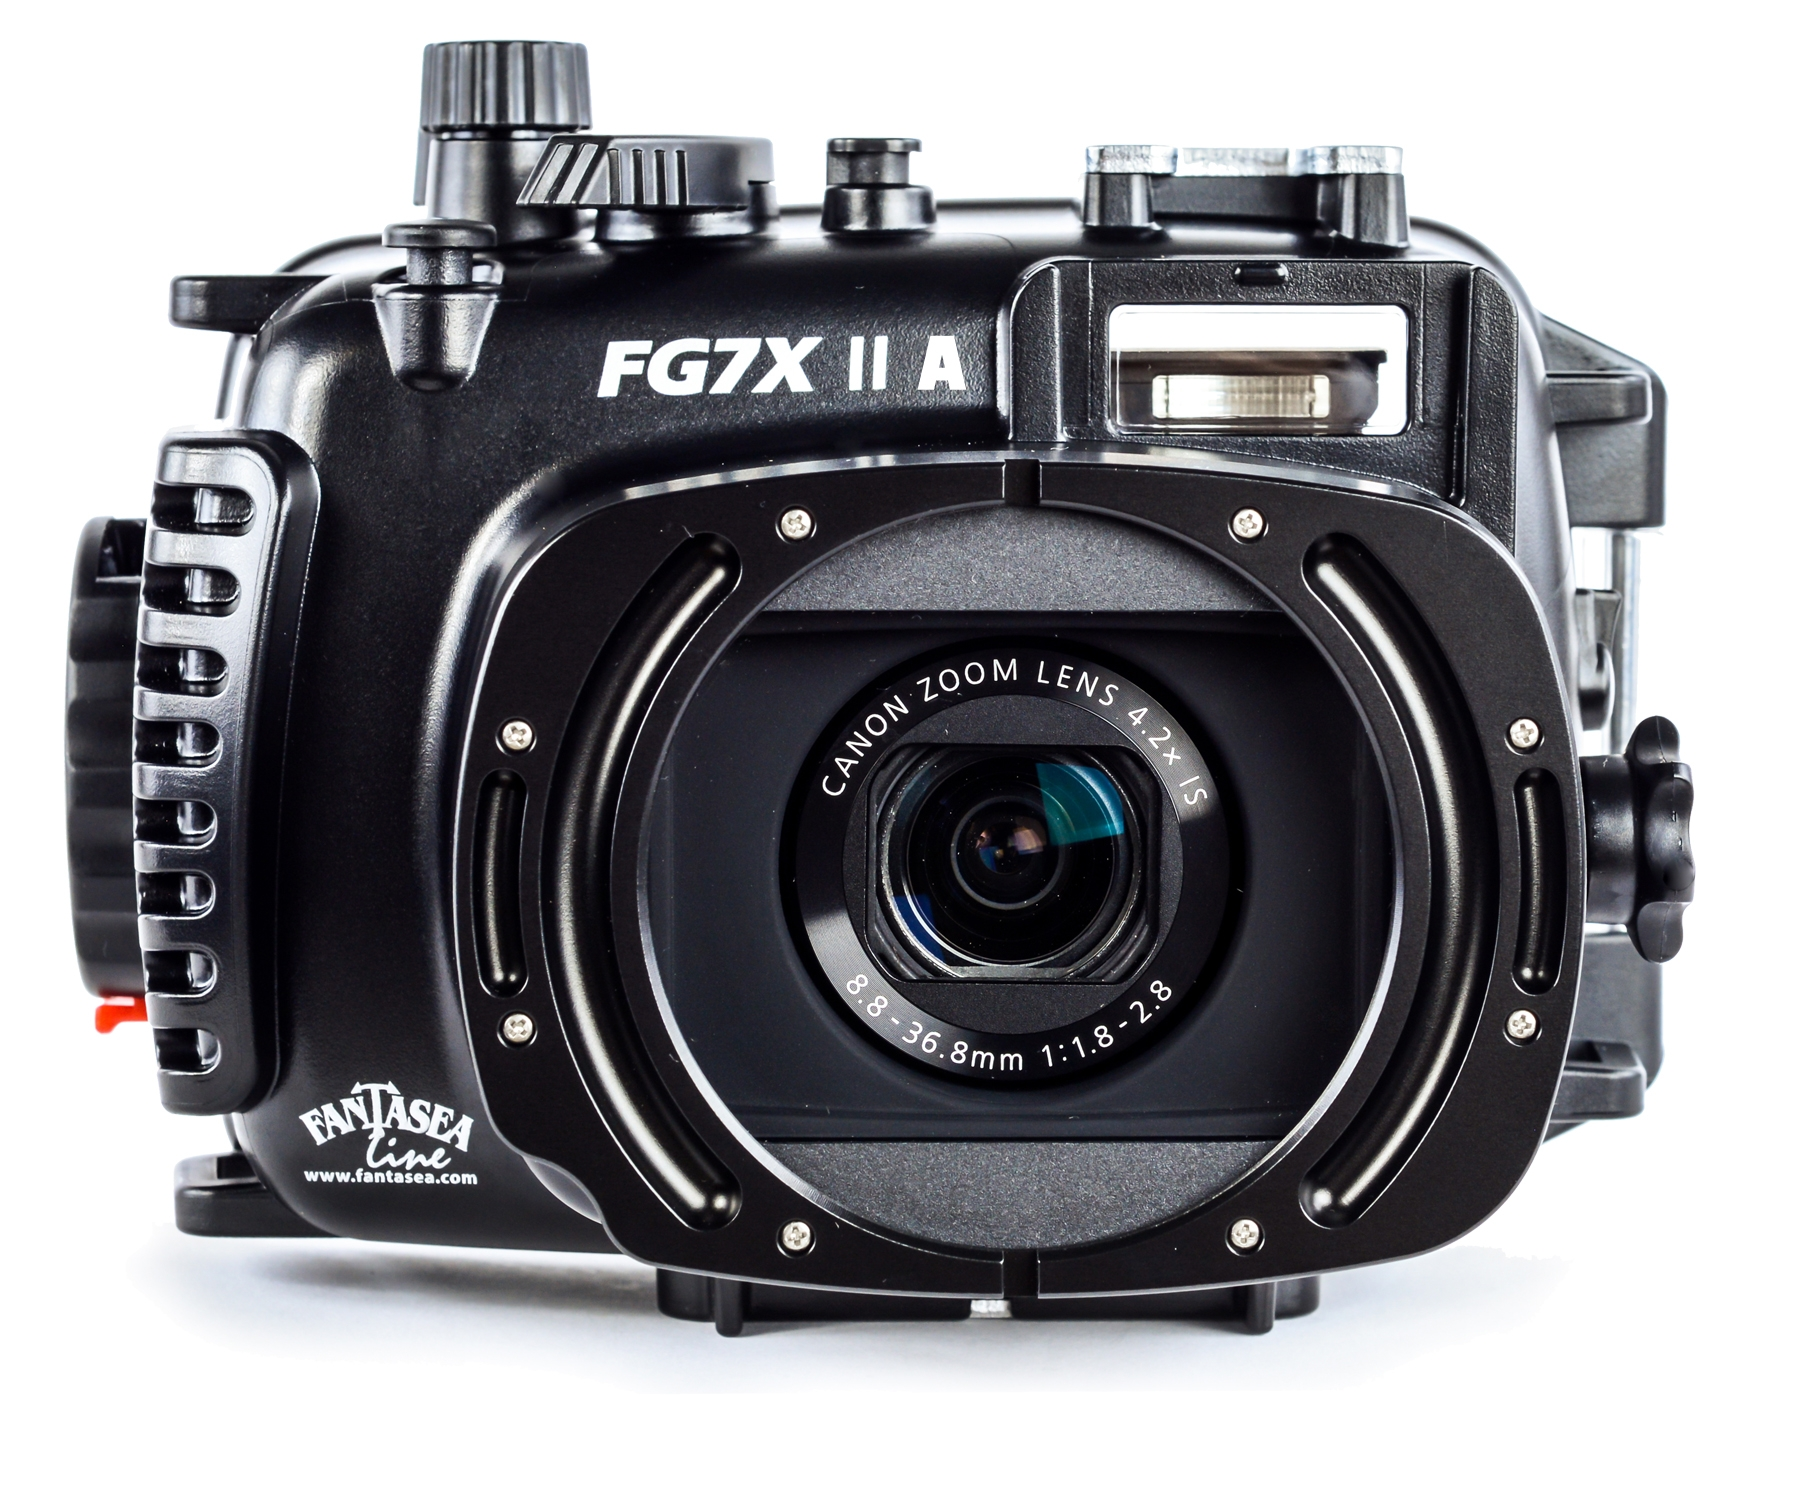 Fantasea FG7X II A M16 Underwater Housing for Canon G7X Mark II camera